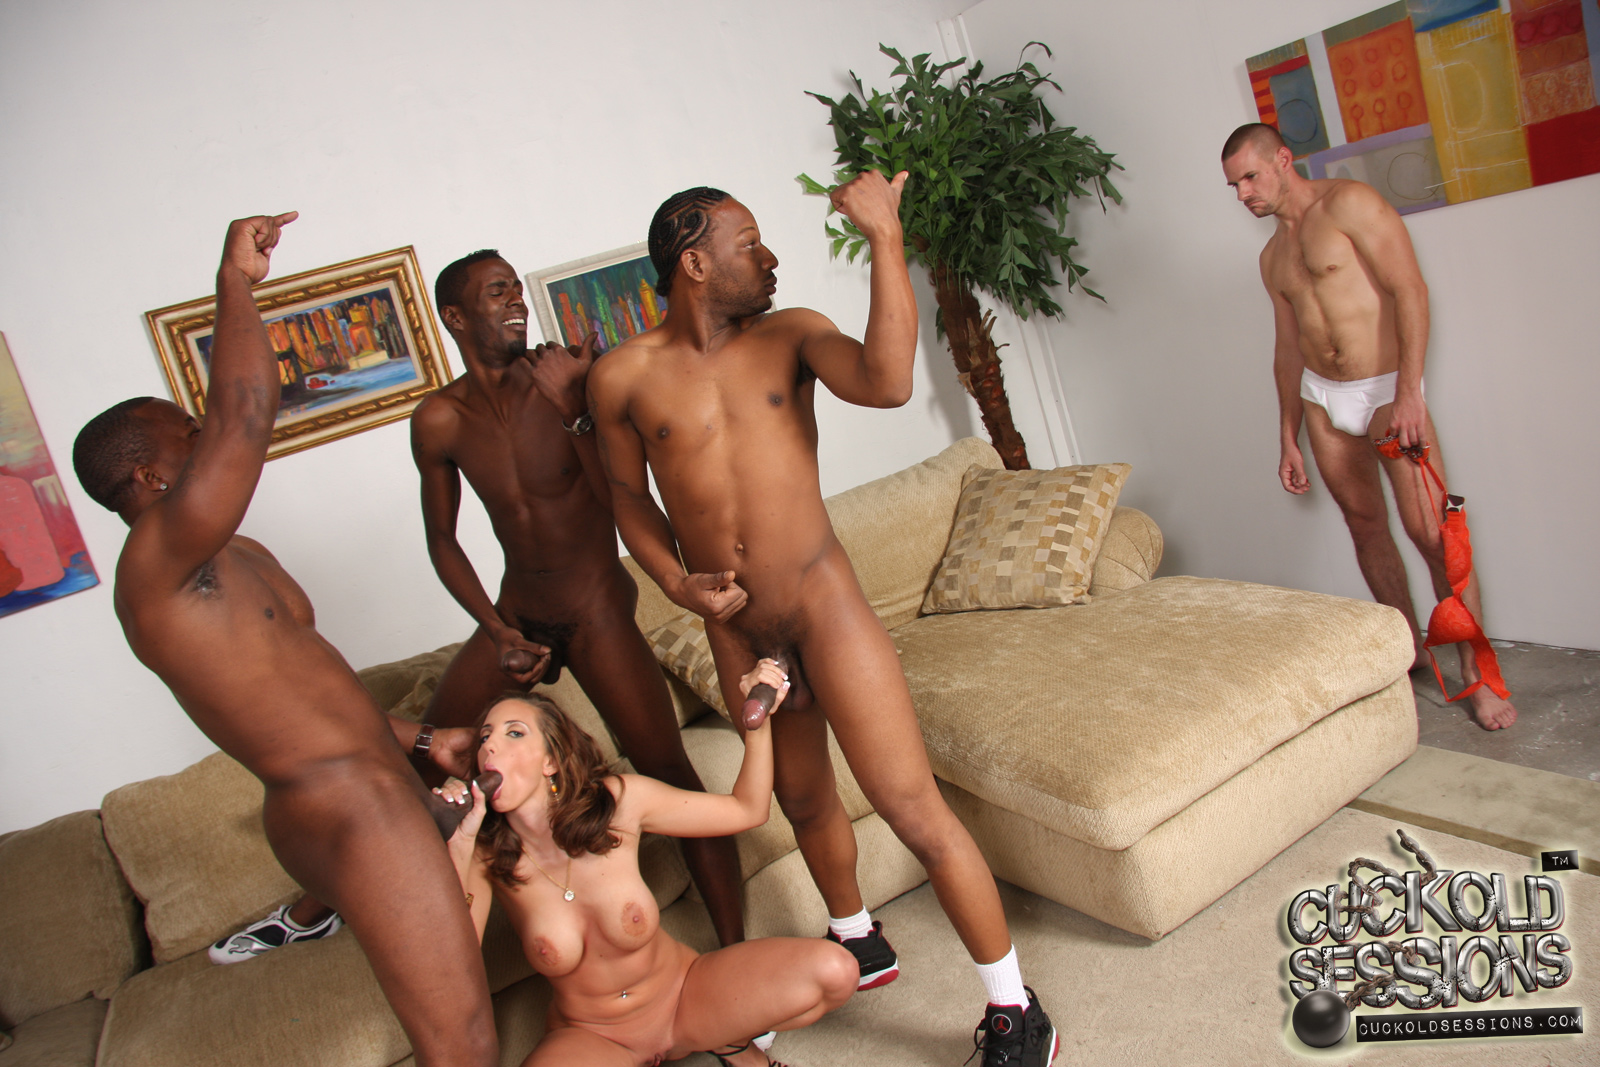 Multiply naked cuckold groups